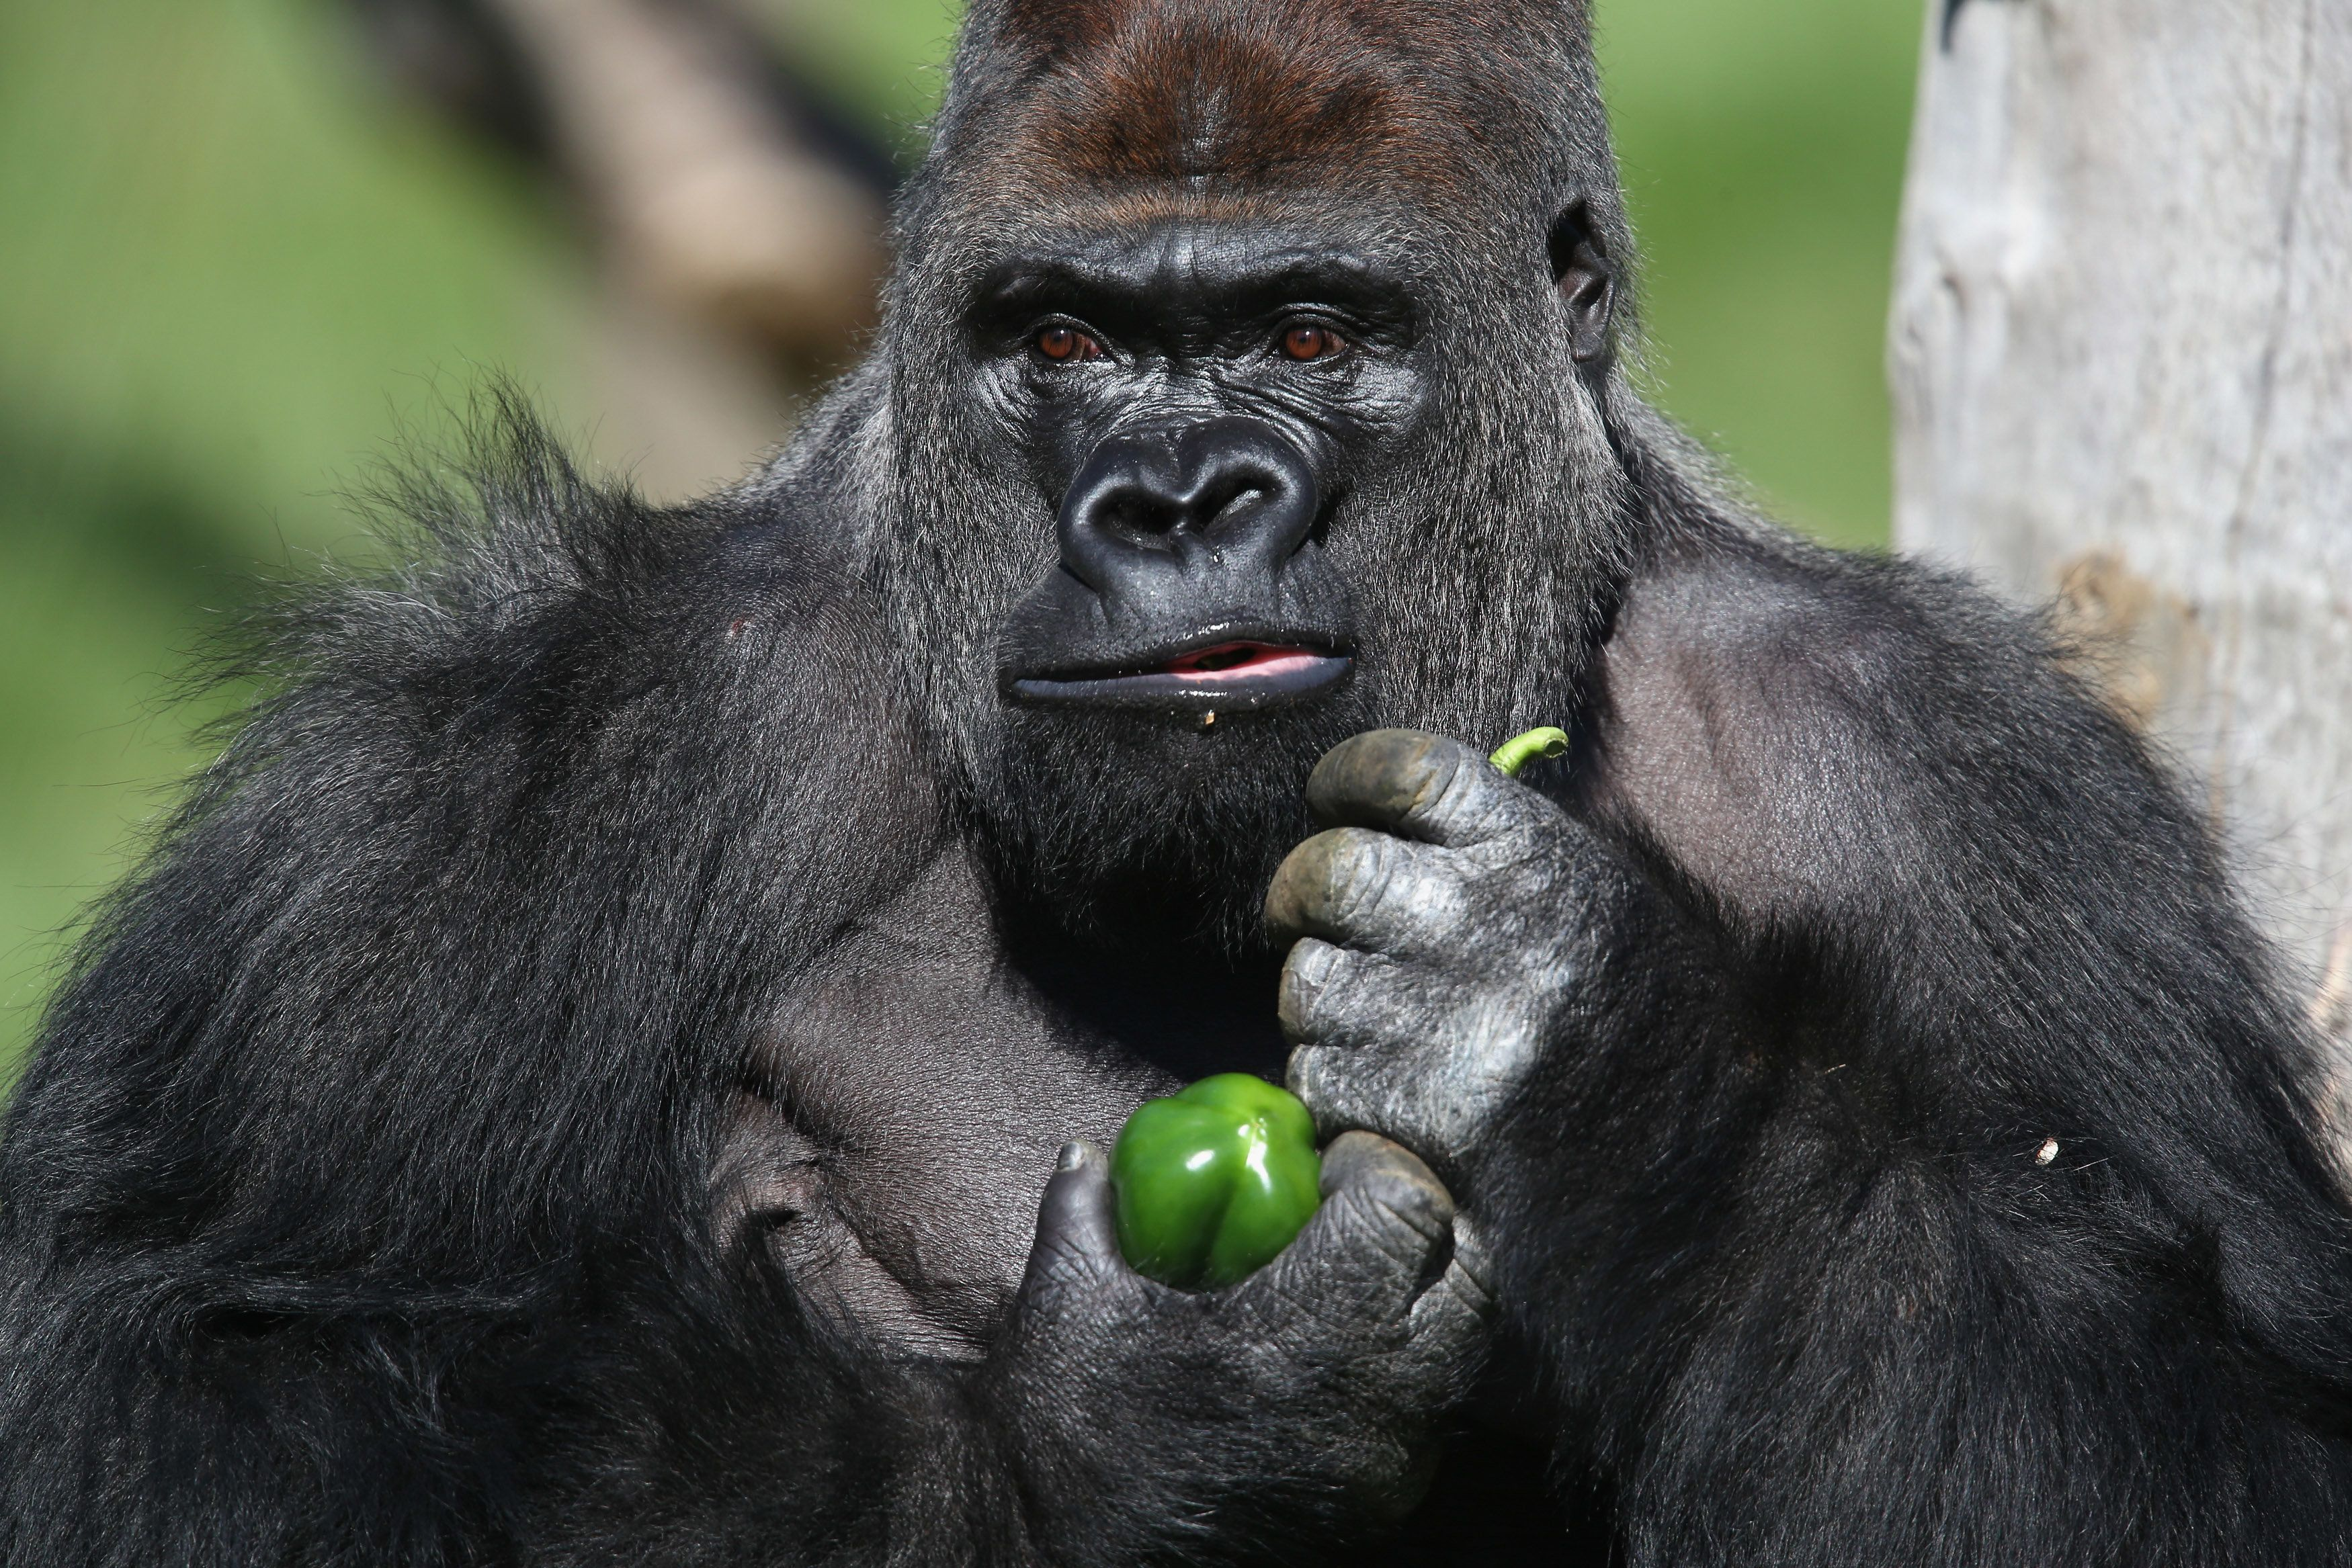 LONDON, ENGLAND - MAY 02:  Kumbuka, a 15-year-old western lowland gorilla, holds a green pepper as he explores his new enclosure in ZSL London Zoo on May 2, 2013 in London, England. The silverback male, who weights 185 kg and stands seven foot tall, moved from Paignton Zoo two weeks ago. It is hoped that Kumbuka will mate with the zoo's three female gorillas to increase numbers of the critically endangered species as part of the European breeding programme.  (Photo by Oli Scarff/Getty Images)